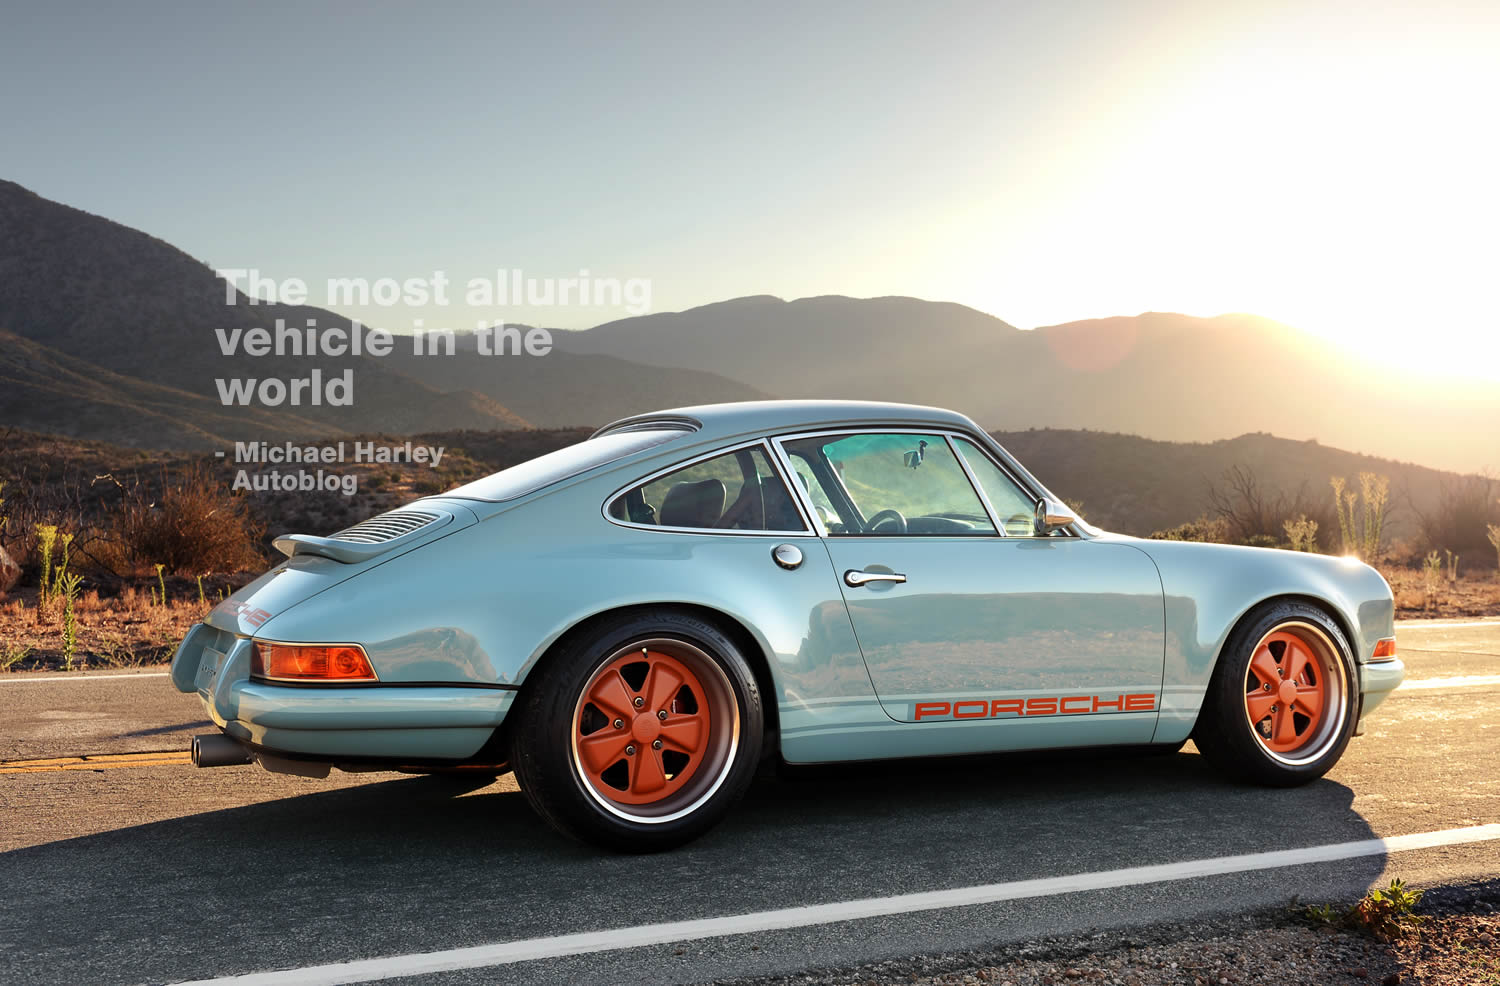 Singer Porsche Wallpaper Wallpapersafari